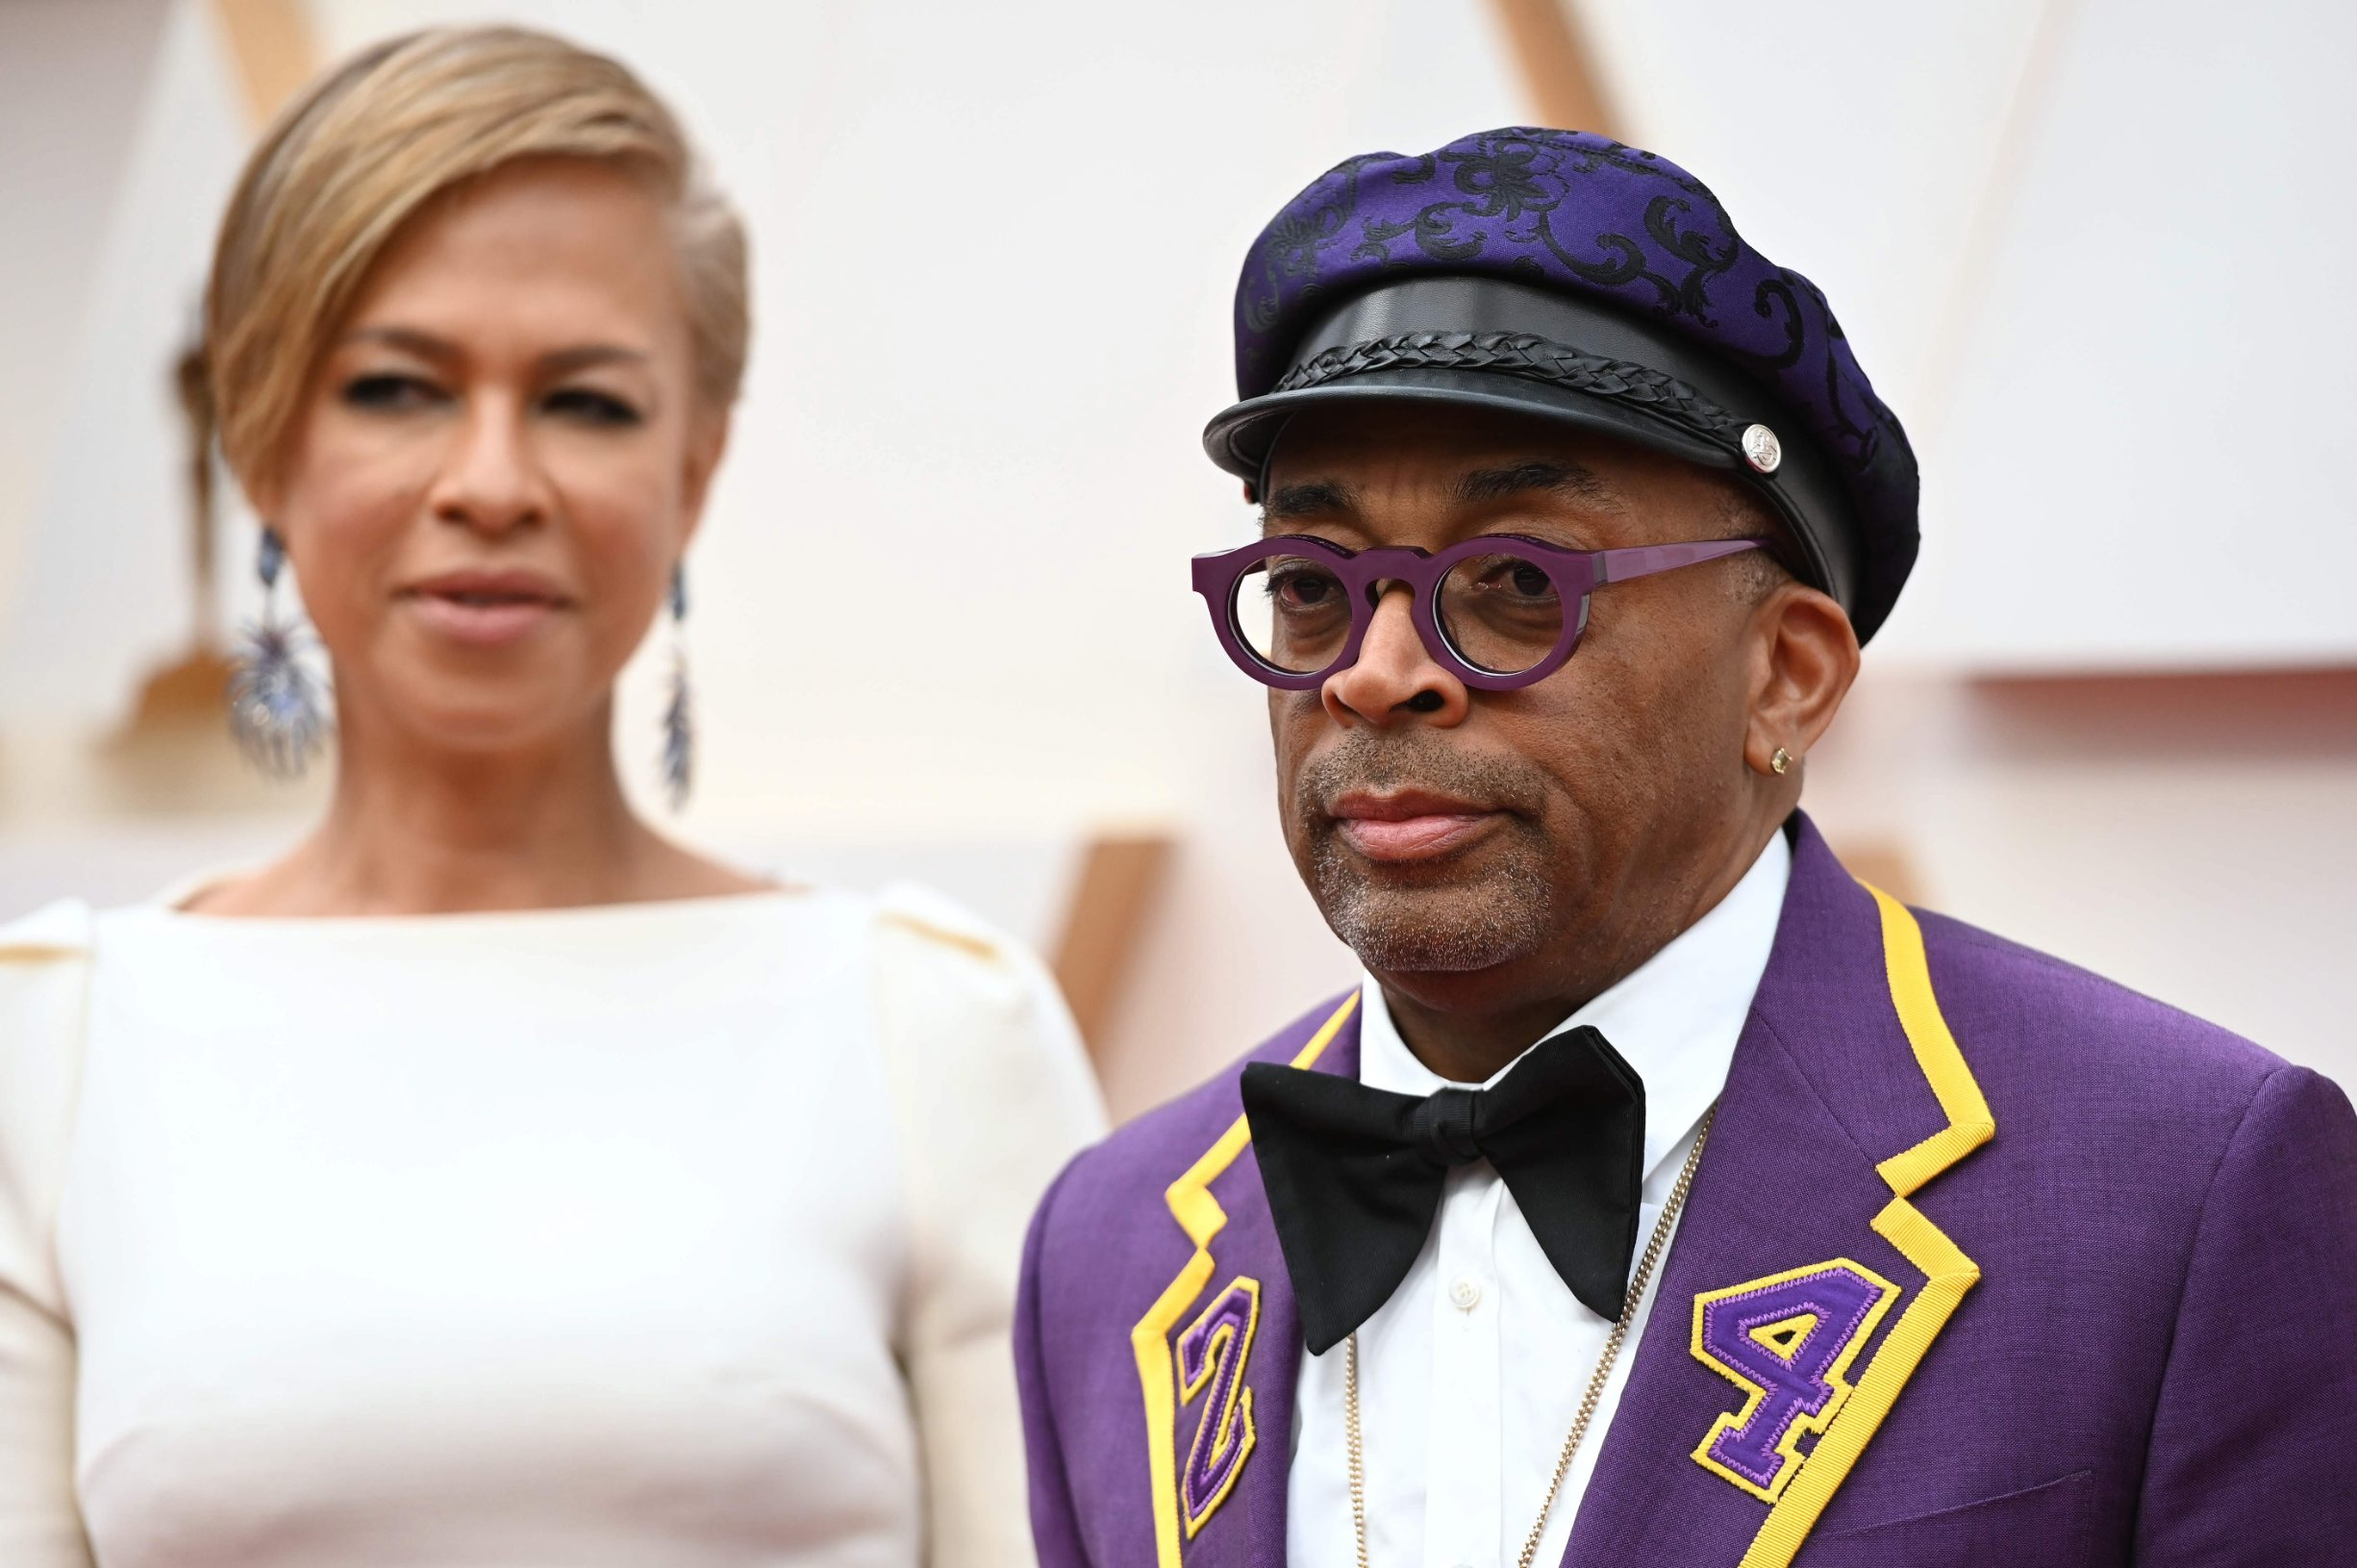 US director Spike Lee (R) and wife producer Tonya Lewis Lee arrive for the 92nd Oscars at the Dolby Theatre in Hollywood, California on February 9, 2020. (Photo by Robyn Beck / AFP)